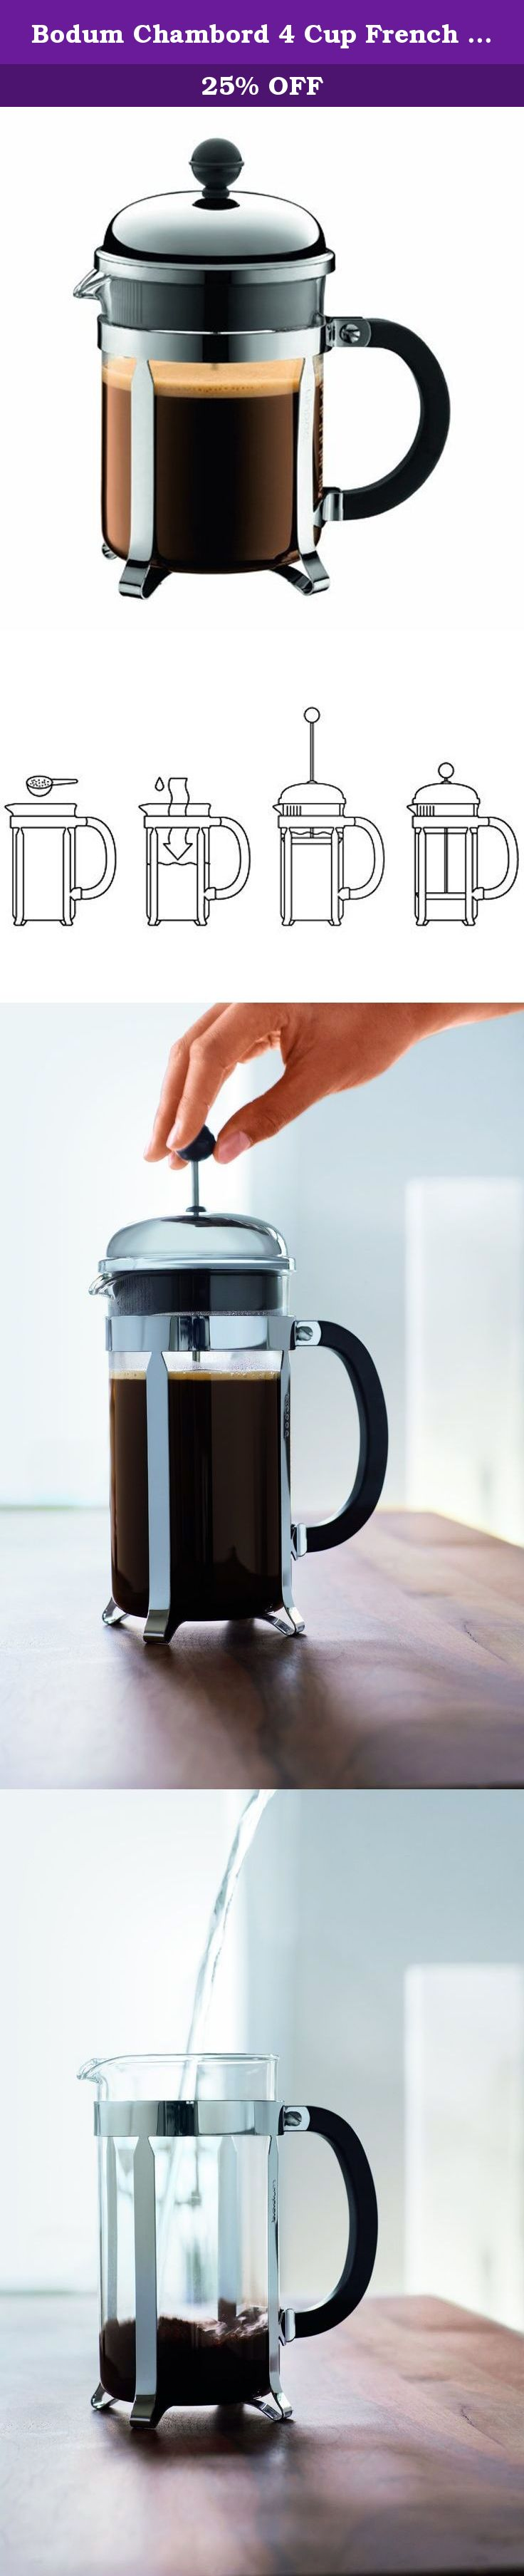 Bodum Chambord 4 Cup French Press Coffee Maker, 17Ounce